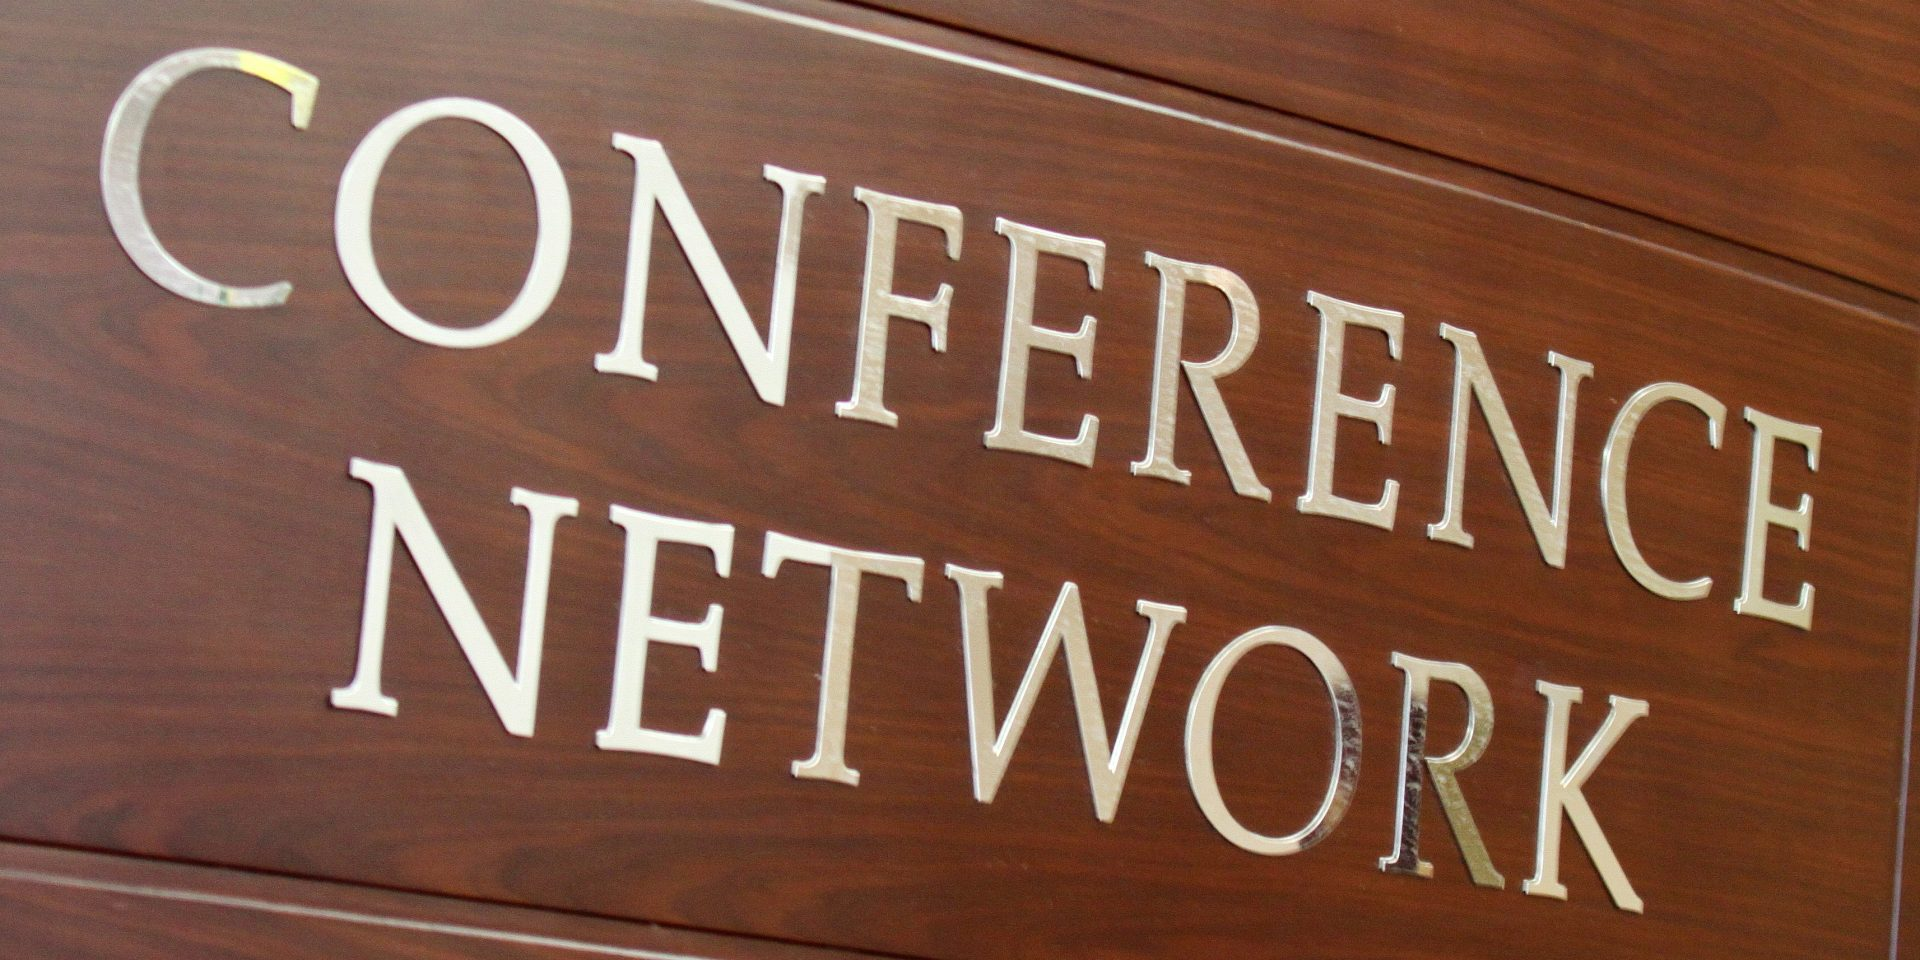 Conference network